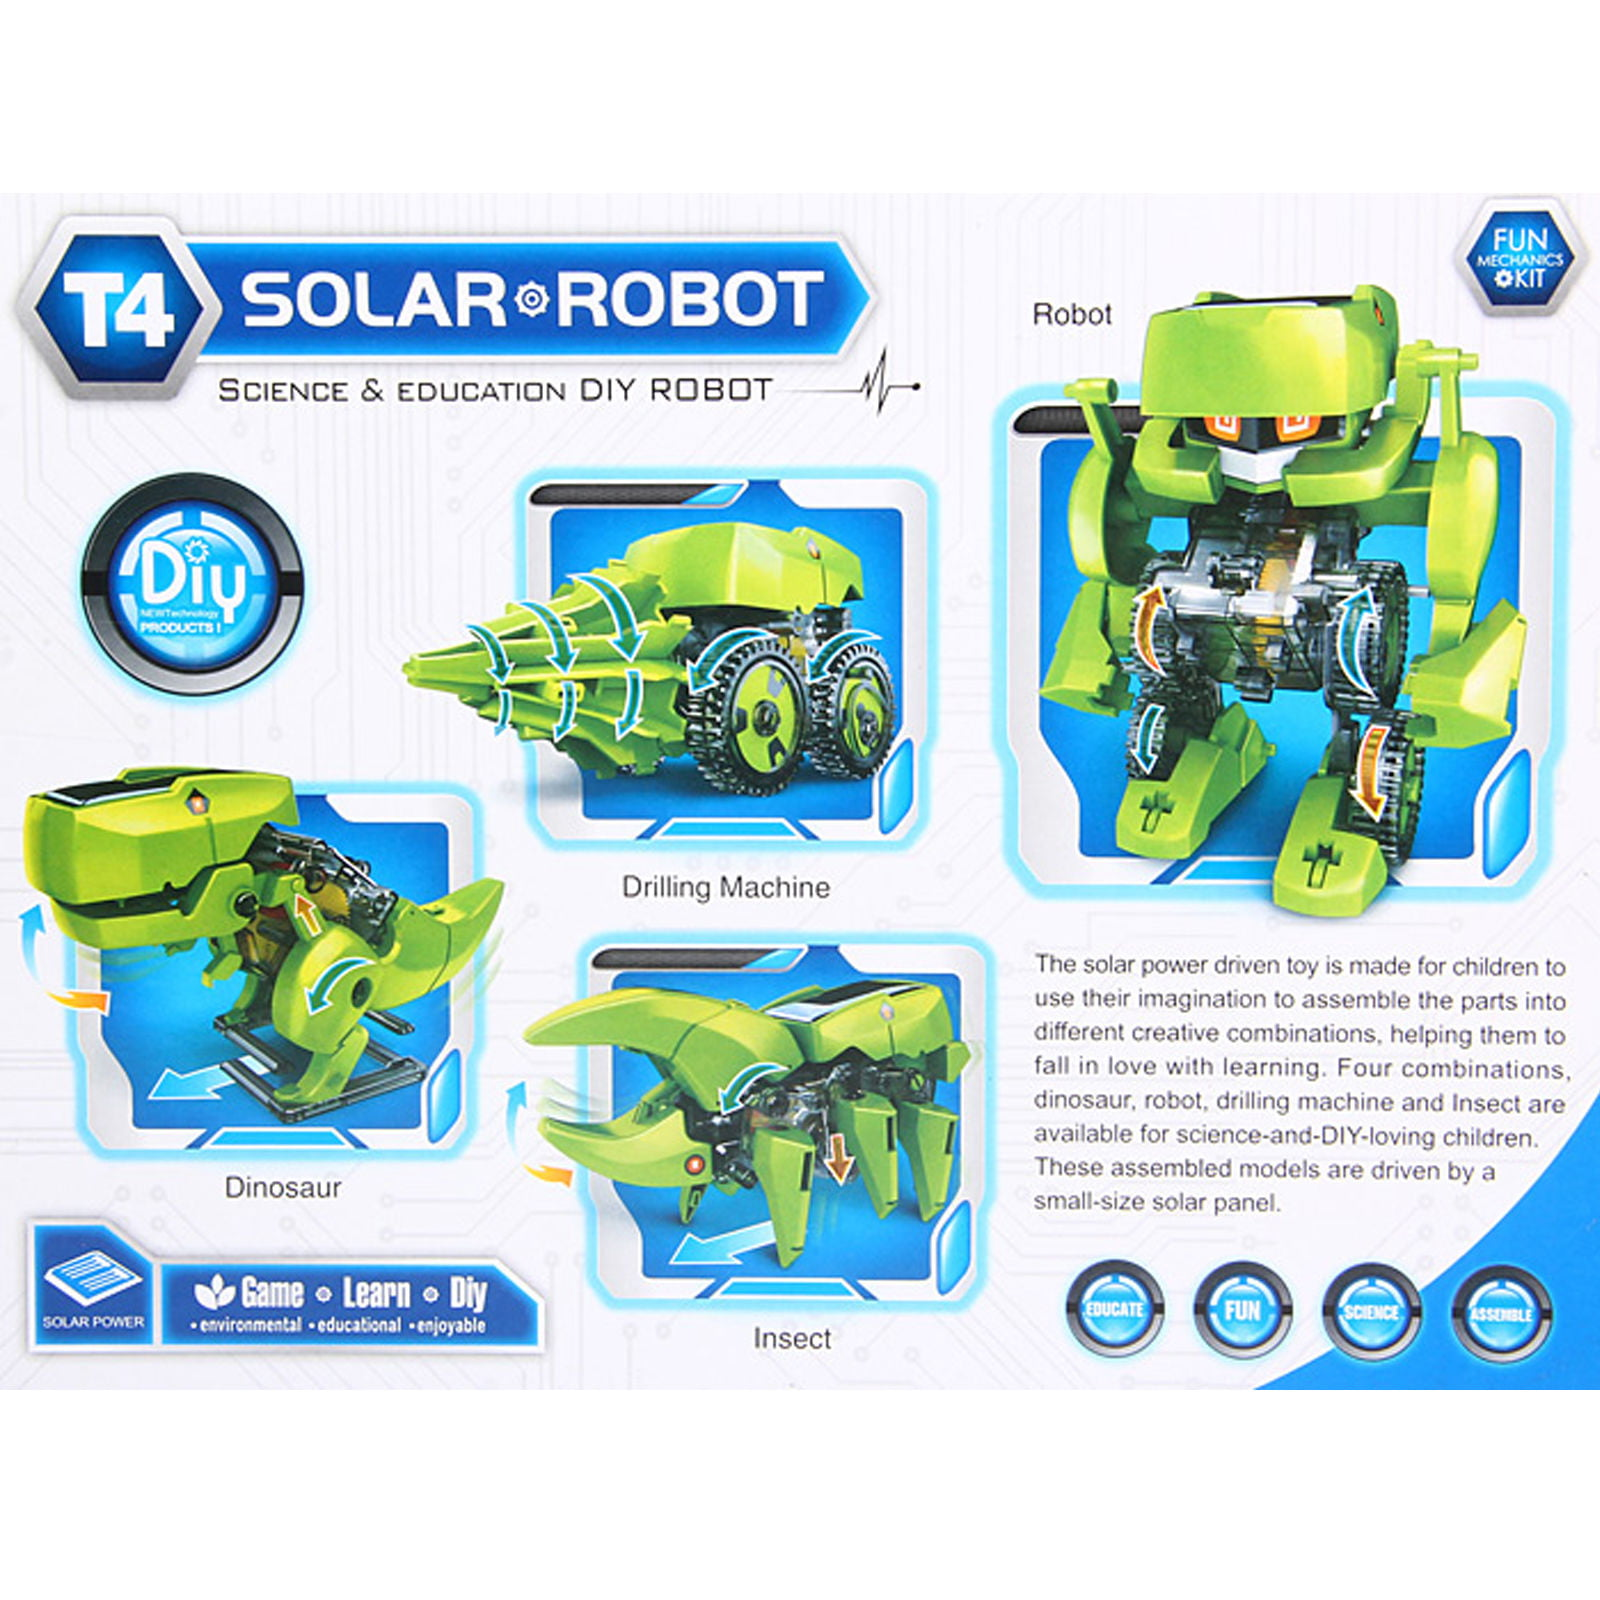 T4 Solar Dinosaur Robot DIY Educational Science ReNewable Energy in Retail Box by